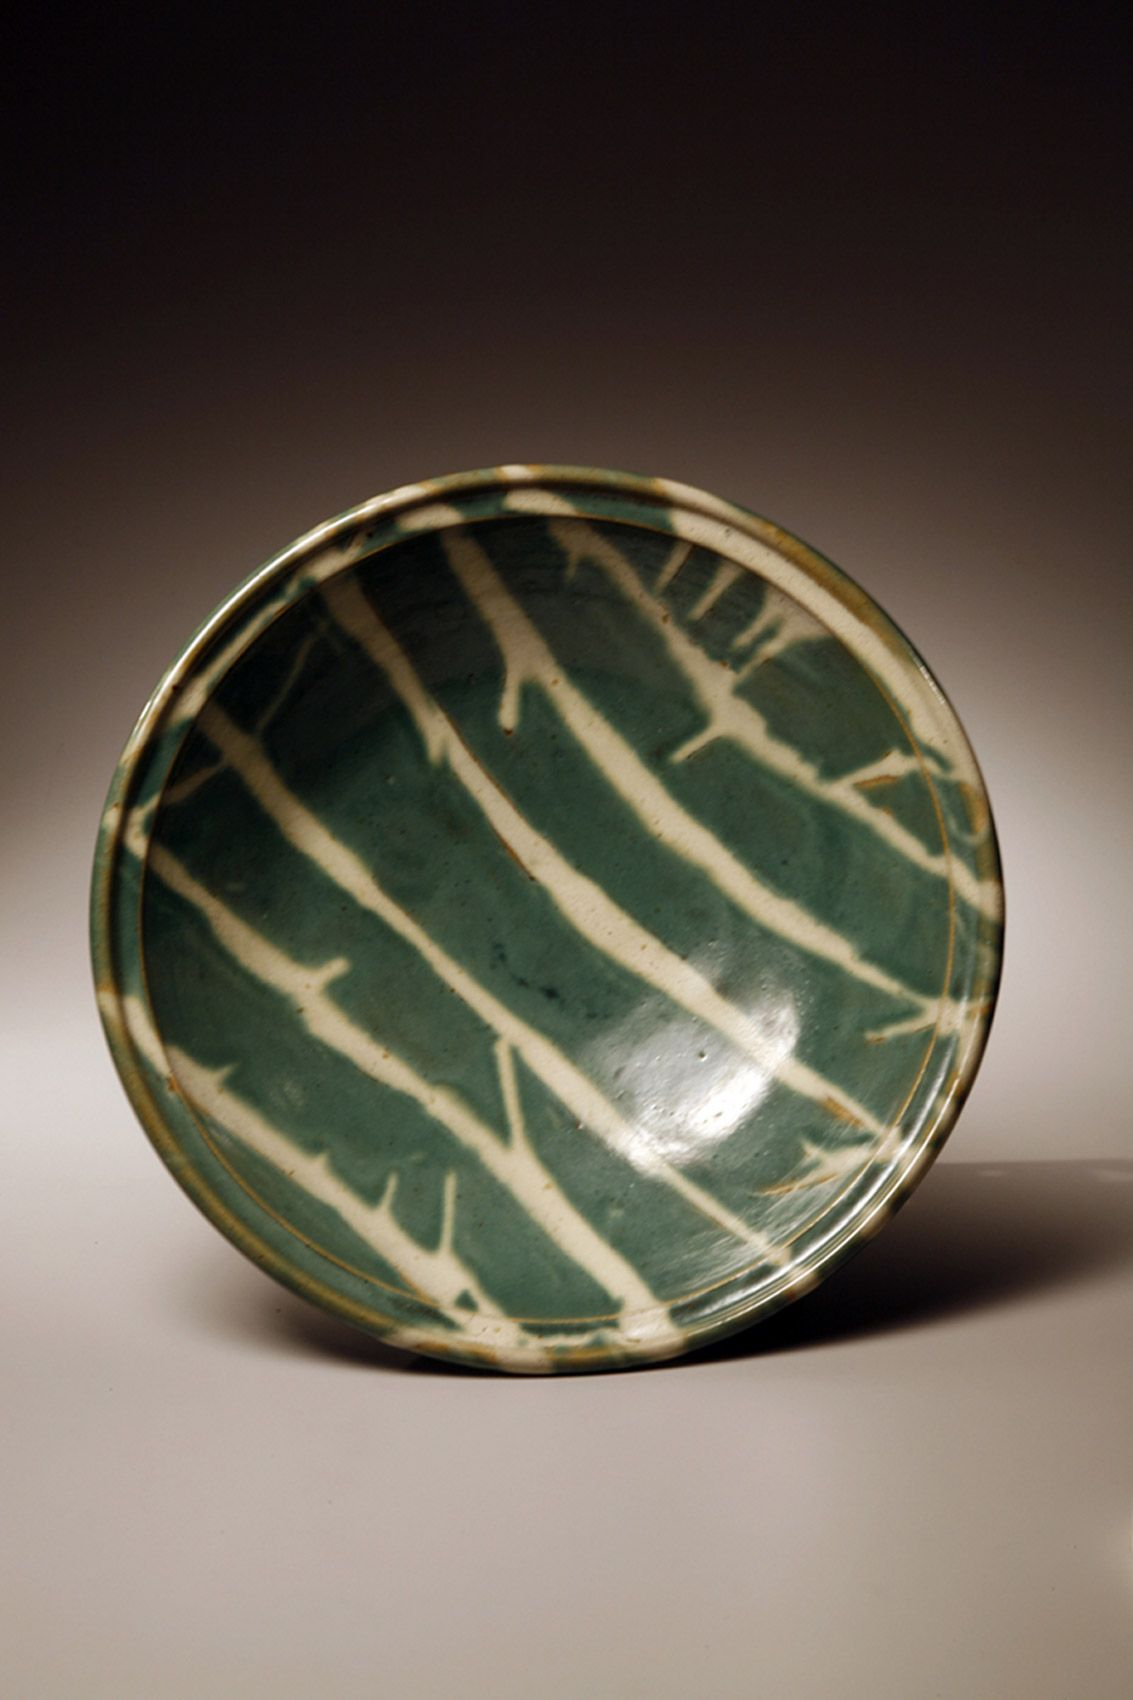 HAMADA SHÔJI Large thickly walled round plate with green glaze and brush strokes of white glaze